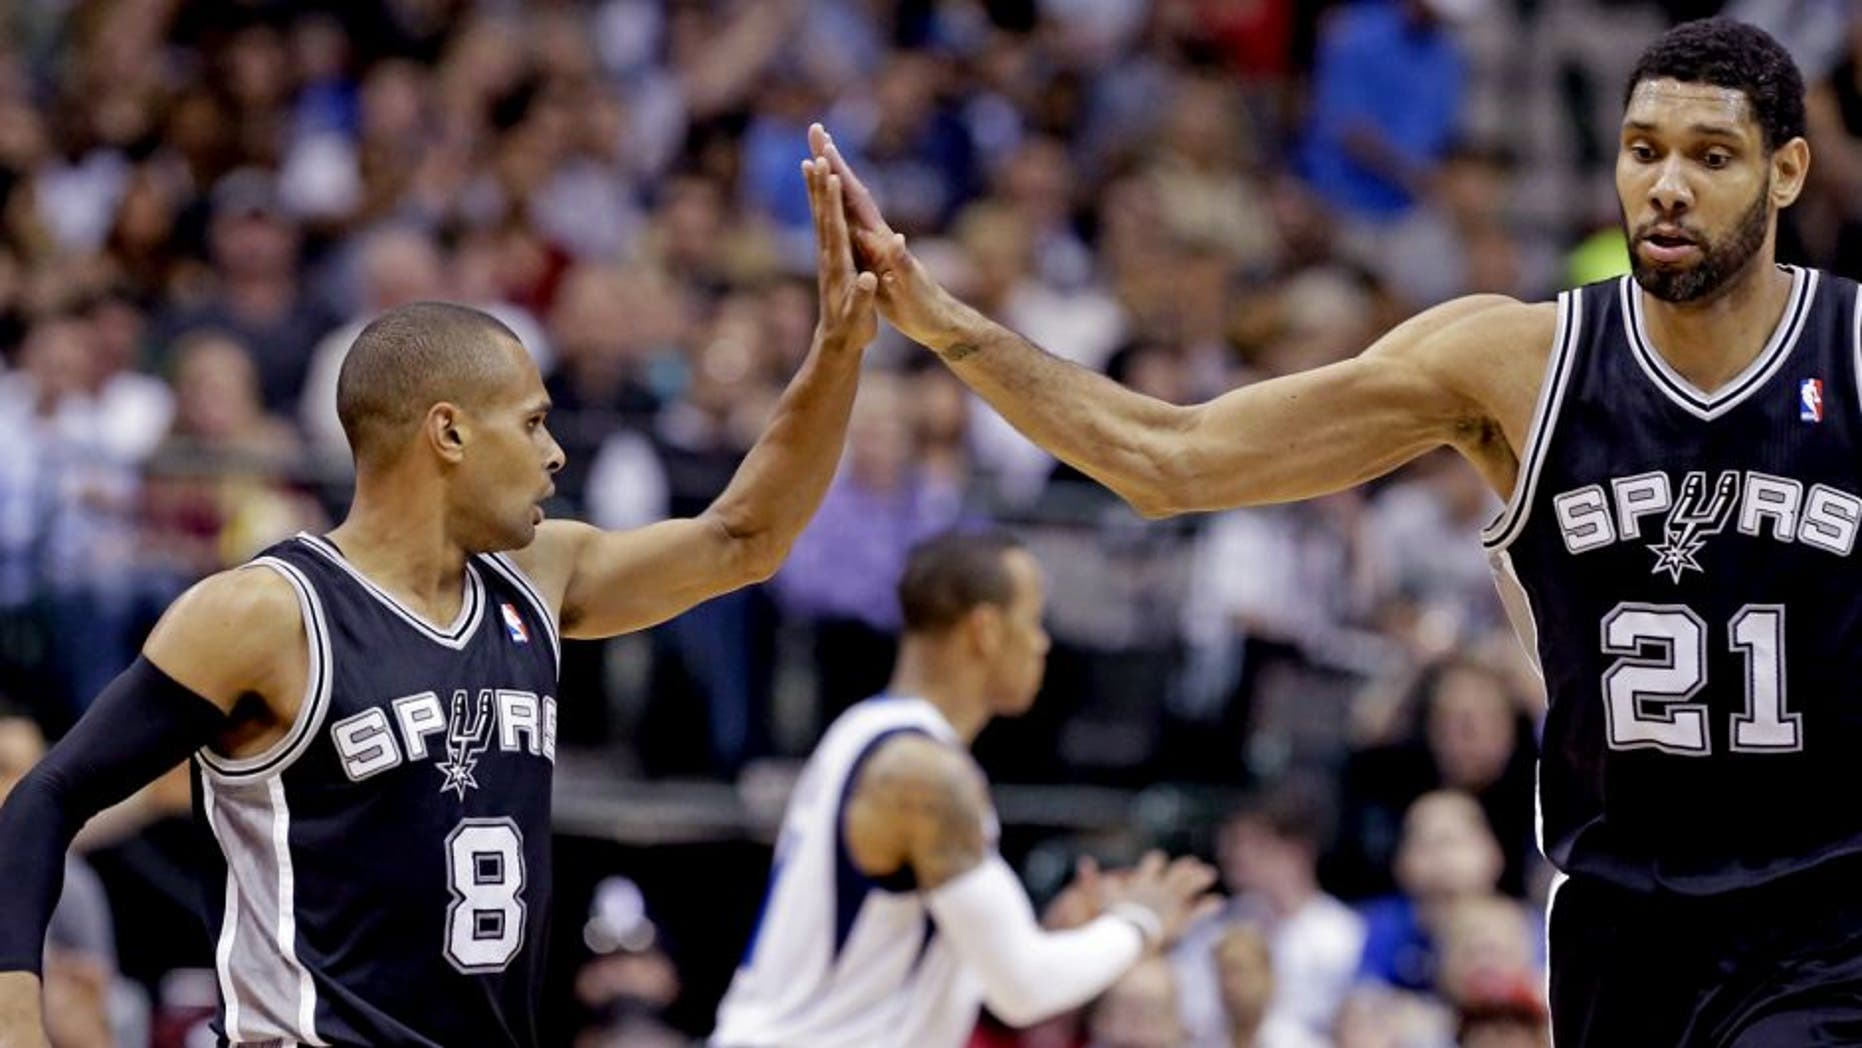 San Antonio Spurs guard Patty Mills (8) receives congratulations from Tim Duncan (21) during the second half an NBA basketball game against the Dallas Mavericks on Thursday, April 10, 2014, in Dallas. The Spurs won 109-100. (AP Photo/LM Otero)